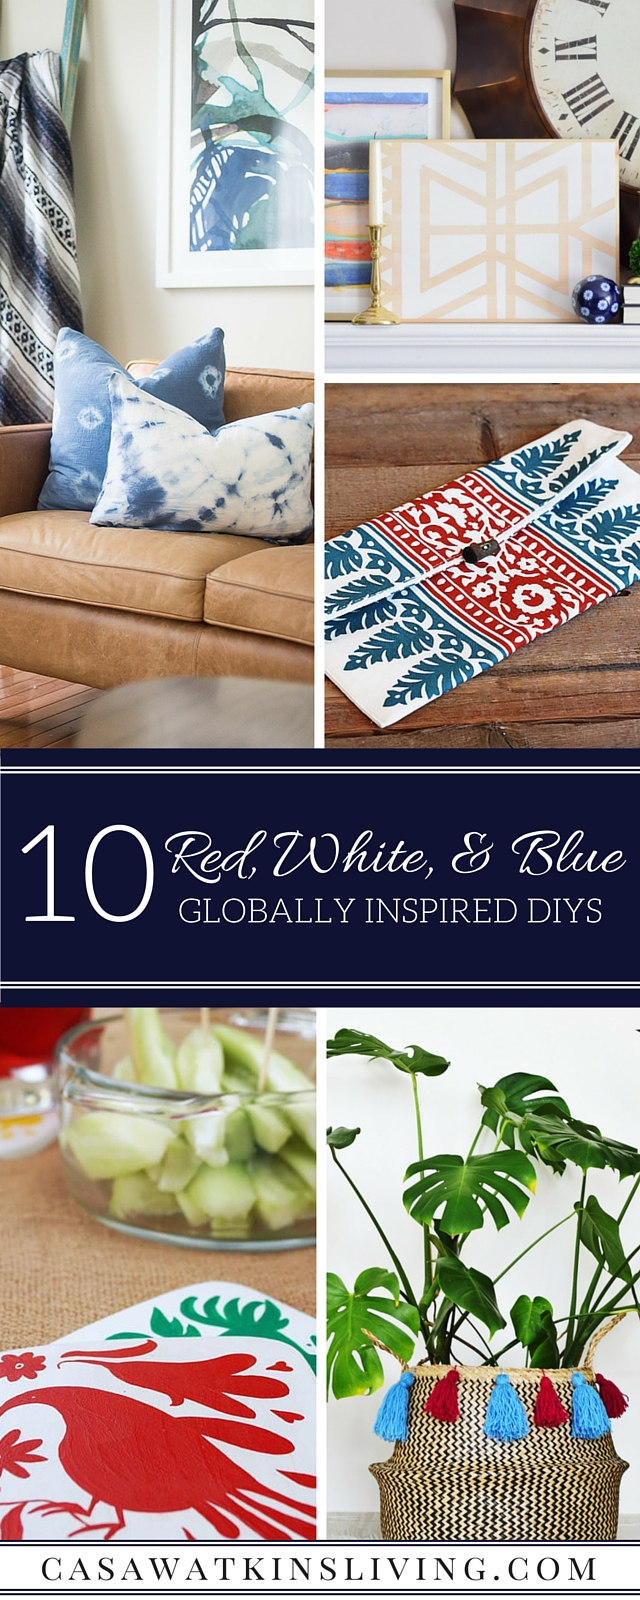 10 Globally inspired DIYs featuring red, white, and blue!